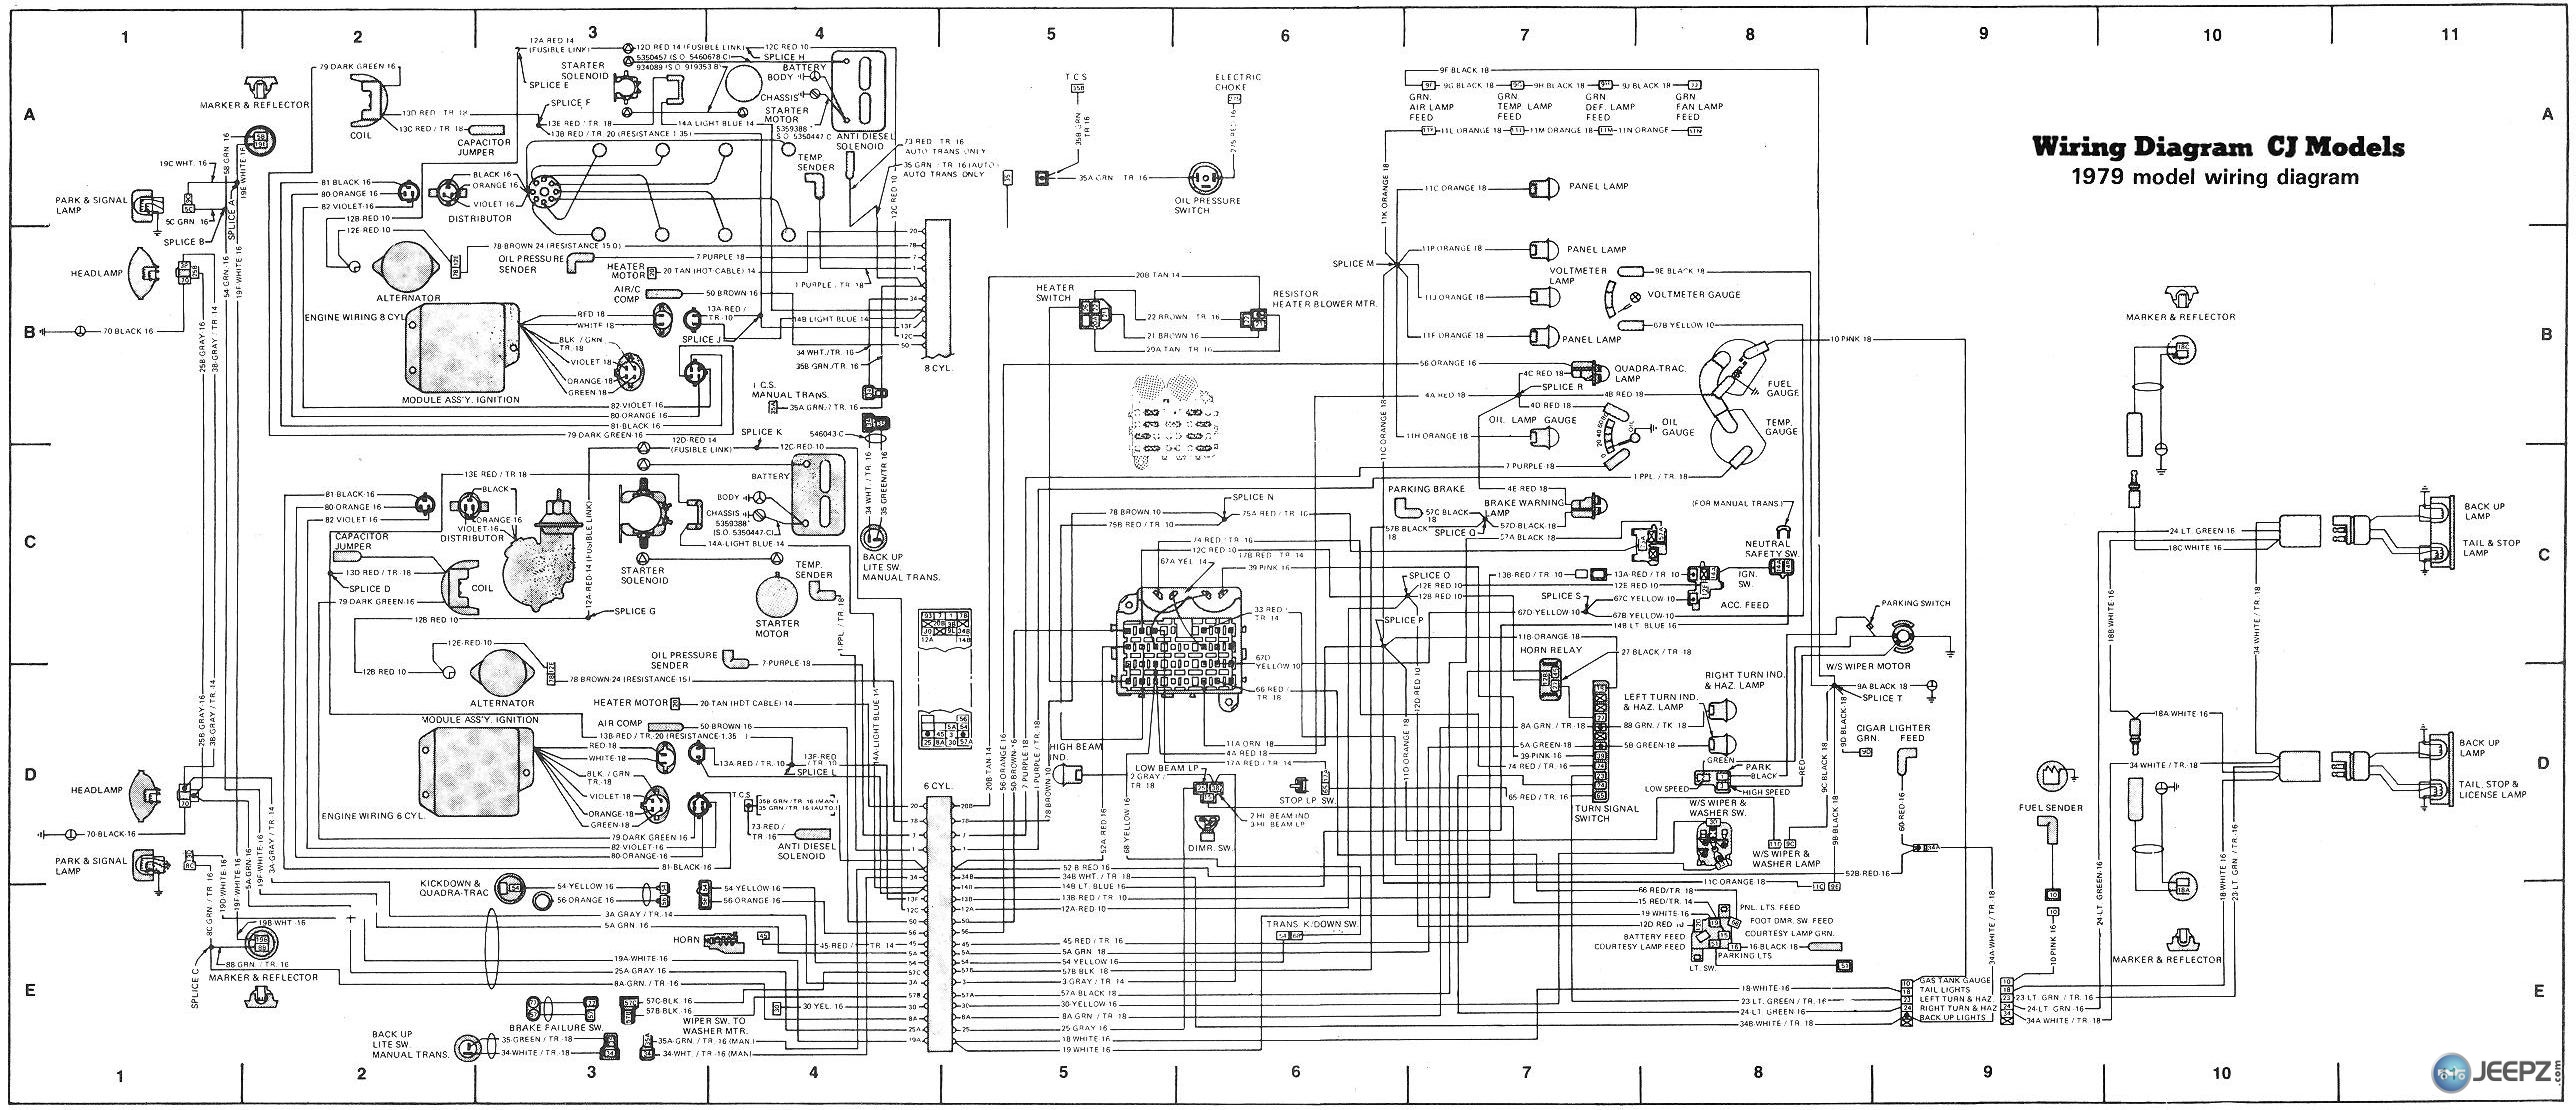 2001 Tacoma Headlights Wiring Diagram Library 2013 Toyota Corolla Headlight Cj Colors Jeep Cj7